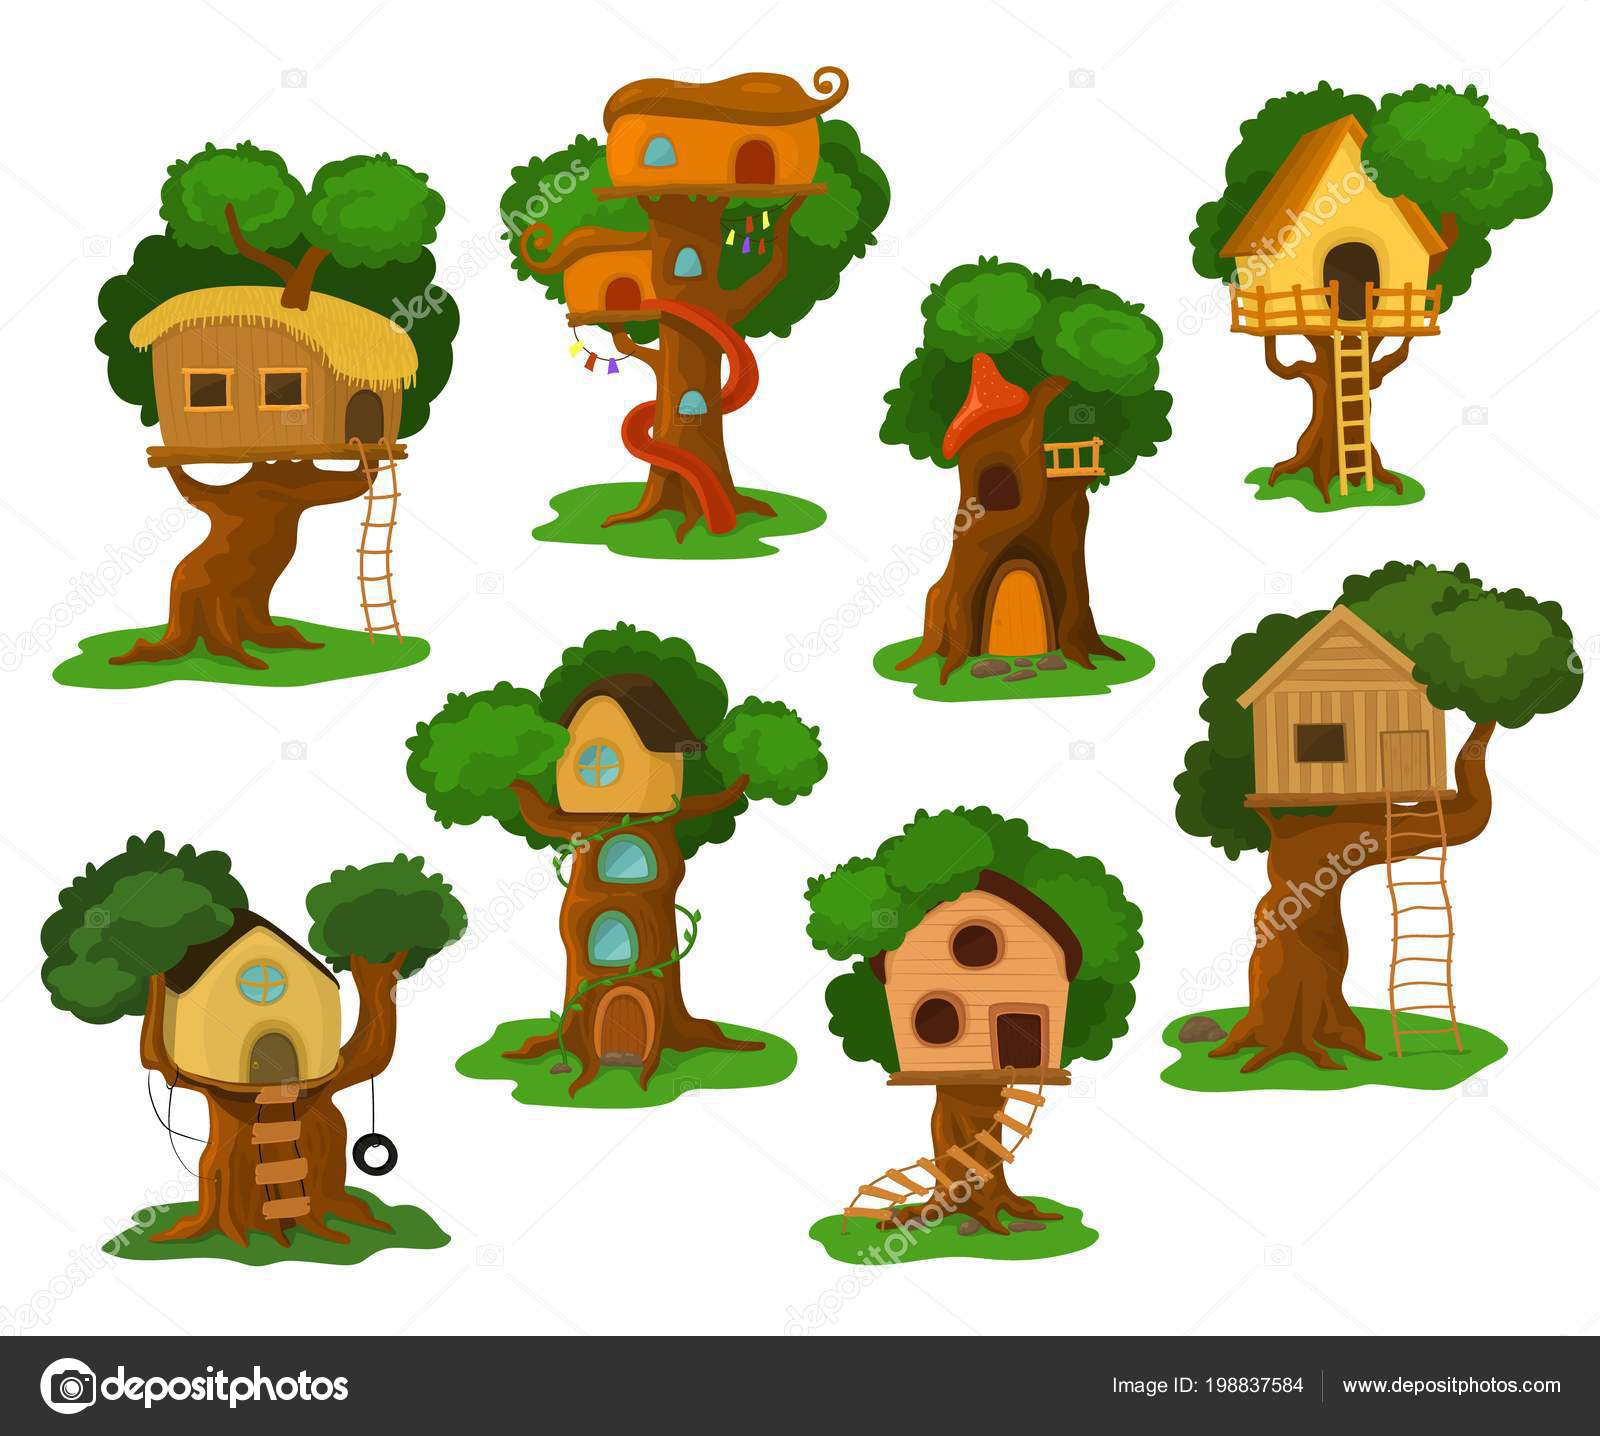 Kids Wooden Tree House Tree House Vector Wooden Playhouse Building On Oak Tree For Kids In Garden Or Park Illustration Set Of Treehouse Construction On Playground With Roof Or Stairs Isolated